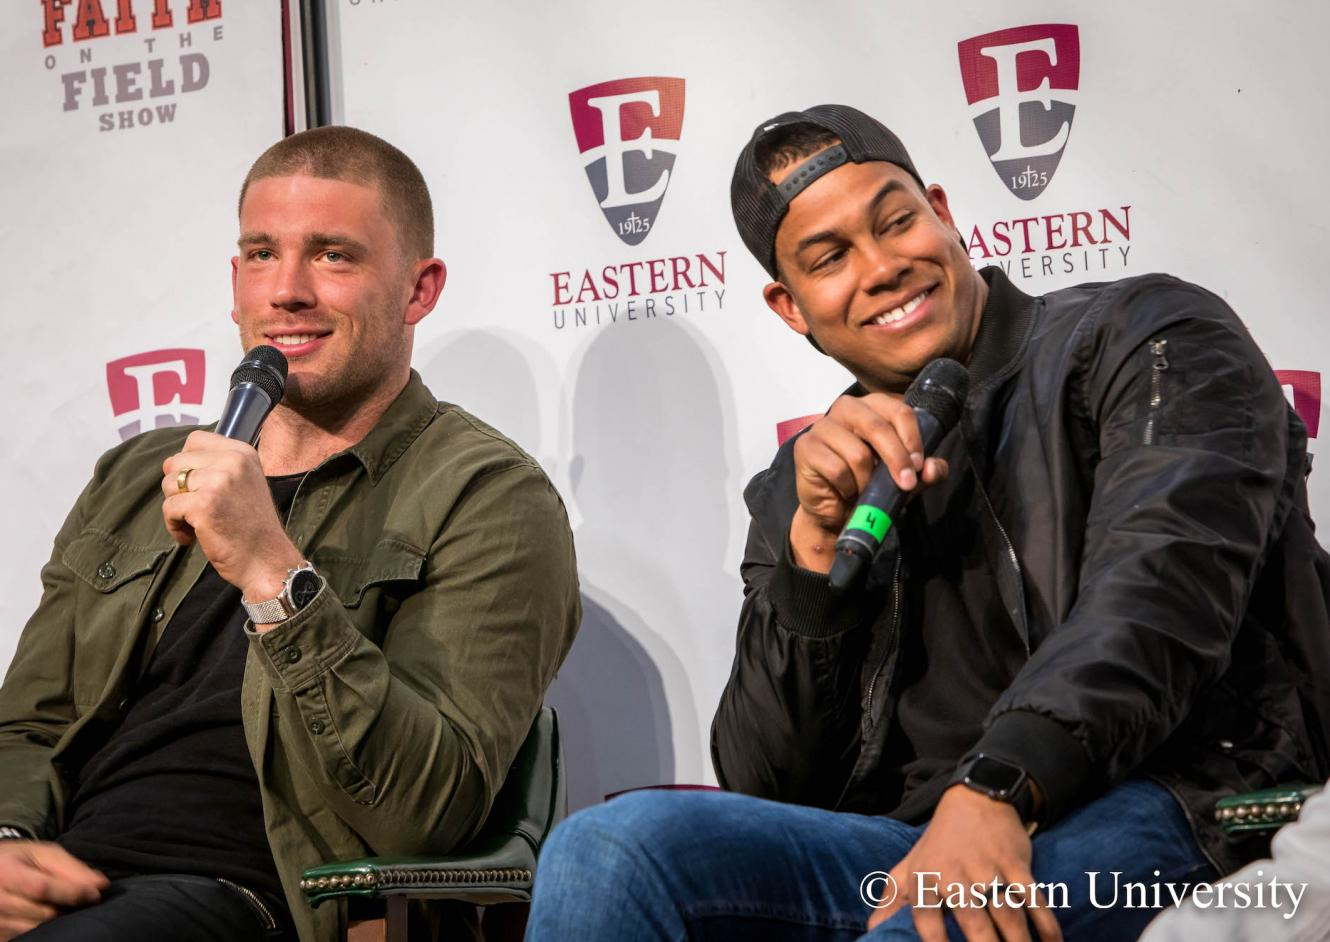 Zach Ertz and Jordan Hicks at Faith on the Field